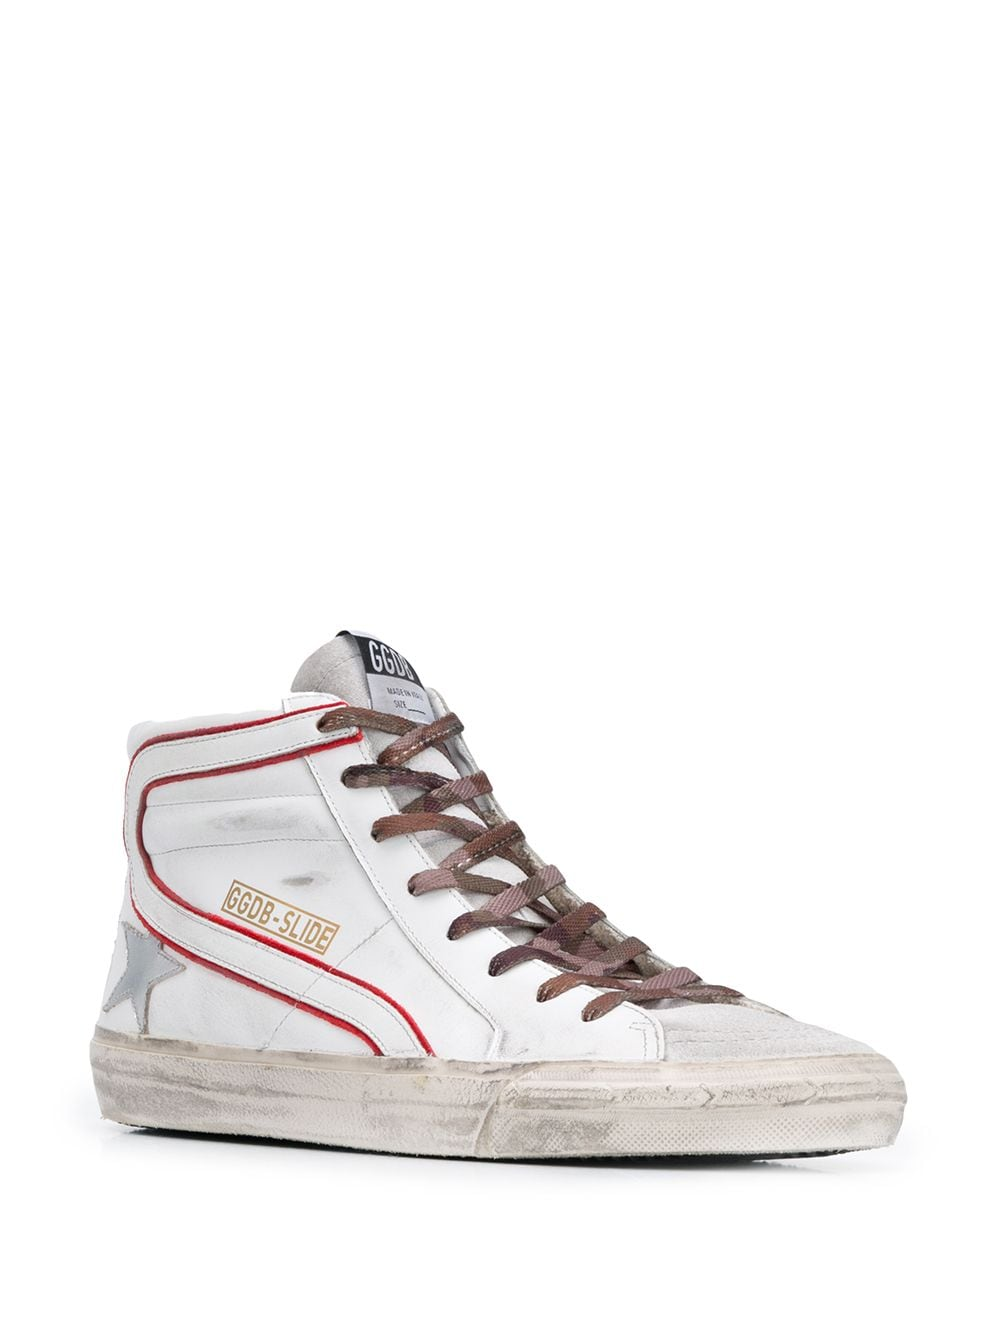 GOLDEN GOOSE GOLDEN GOOSE | Sneakers | GMF00115F00059480185